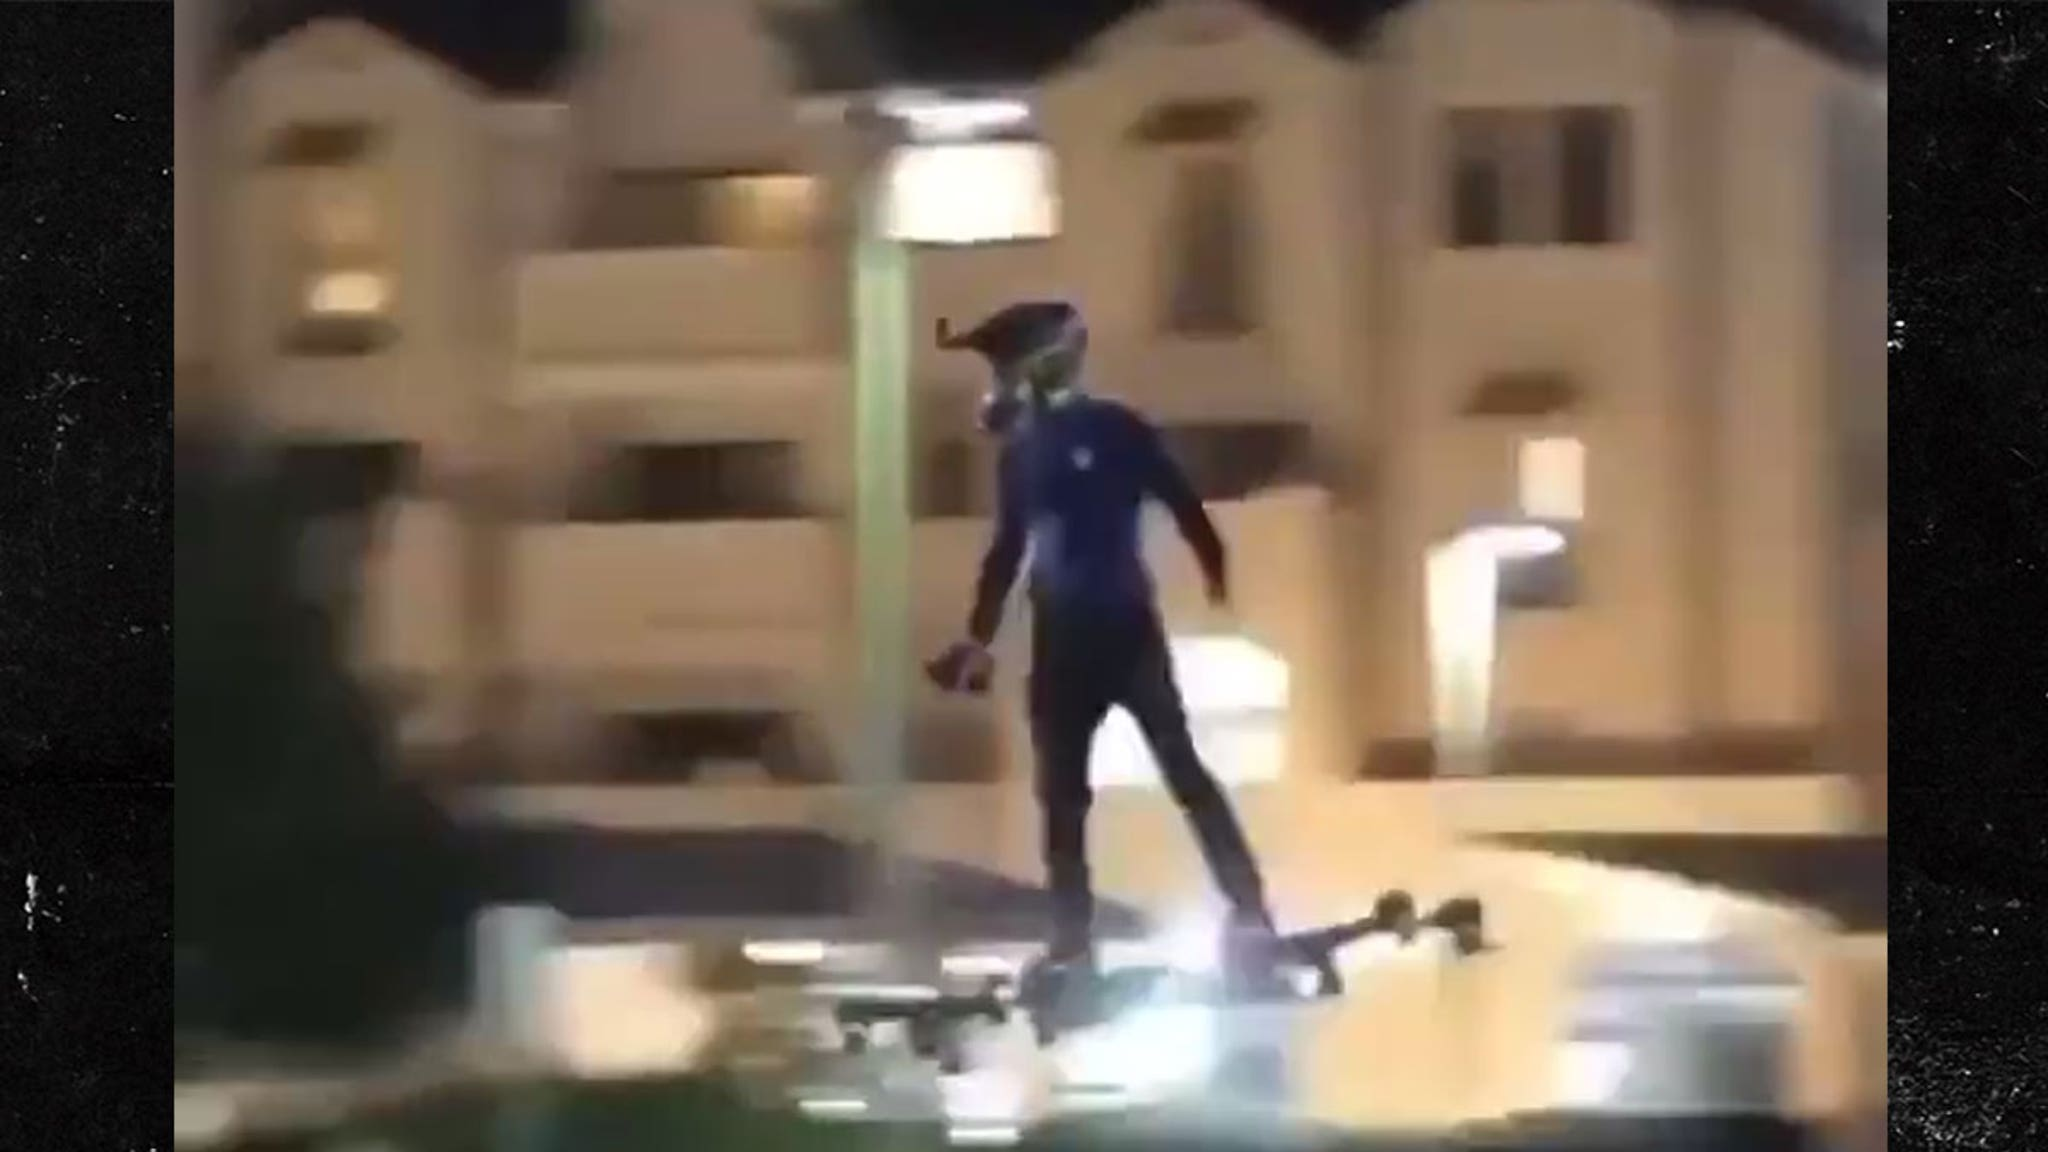 Real-Life Hoverboard Seen Zipping Through Streets, Retails for $20k